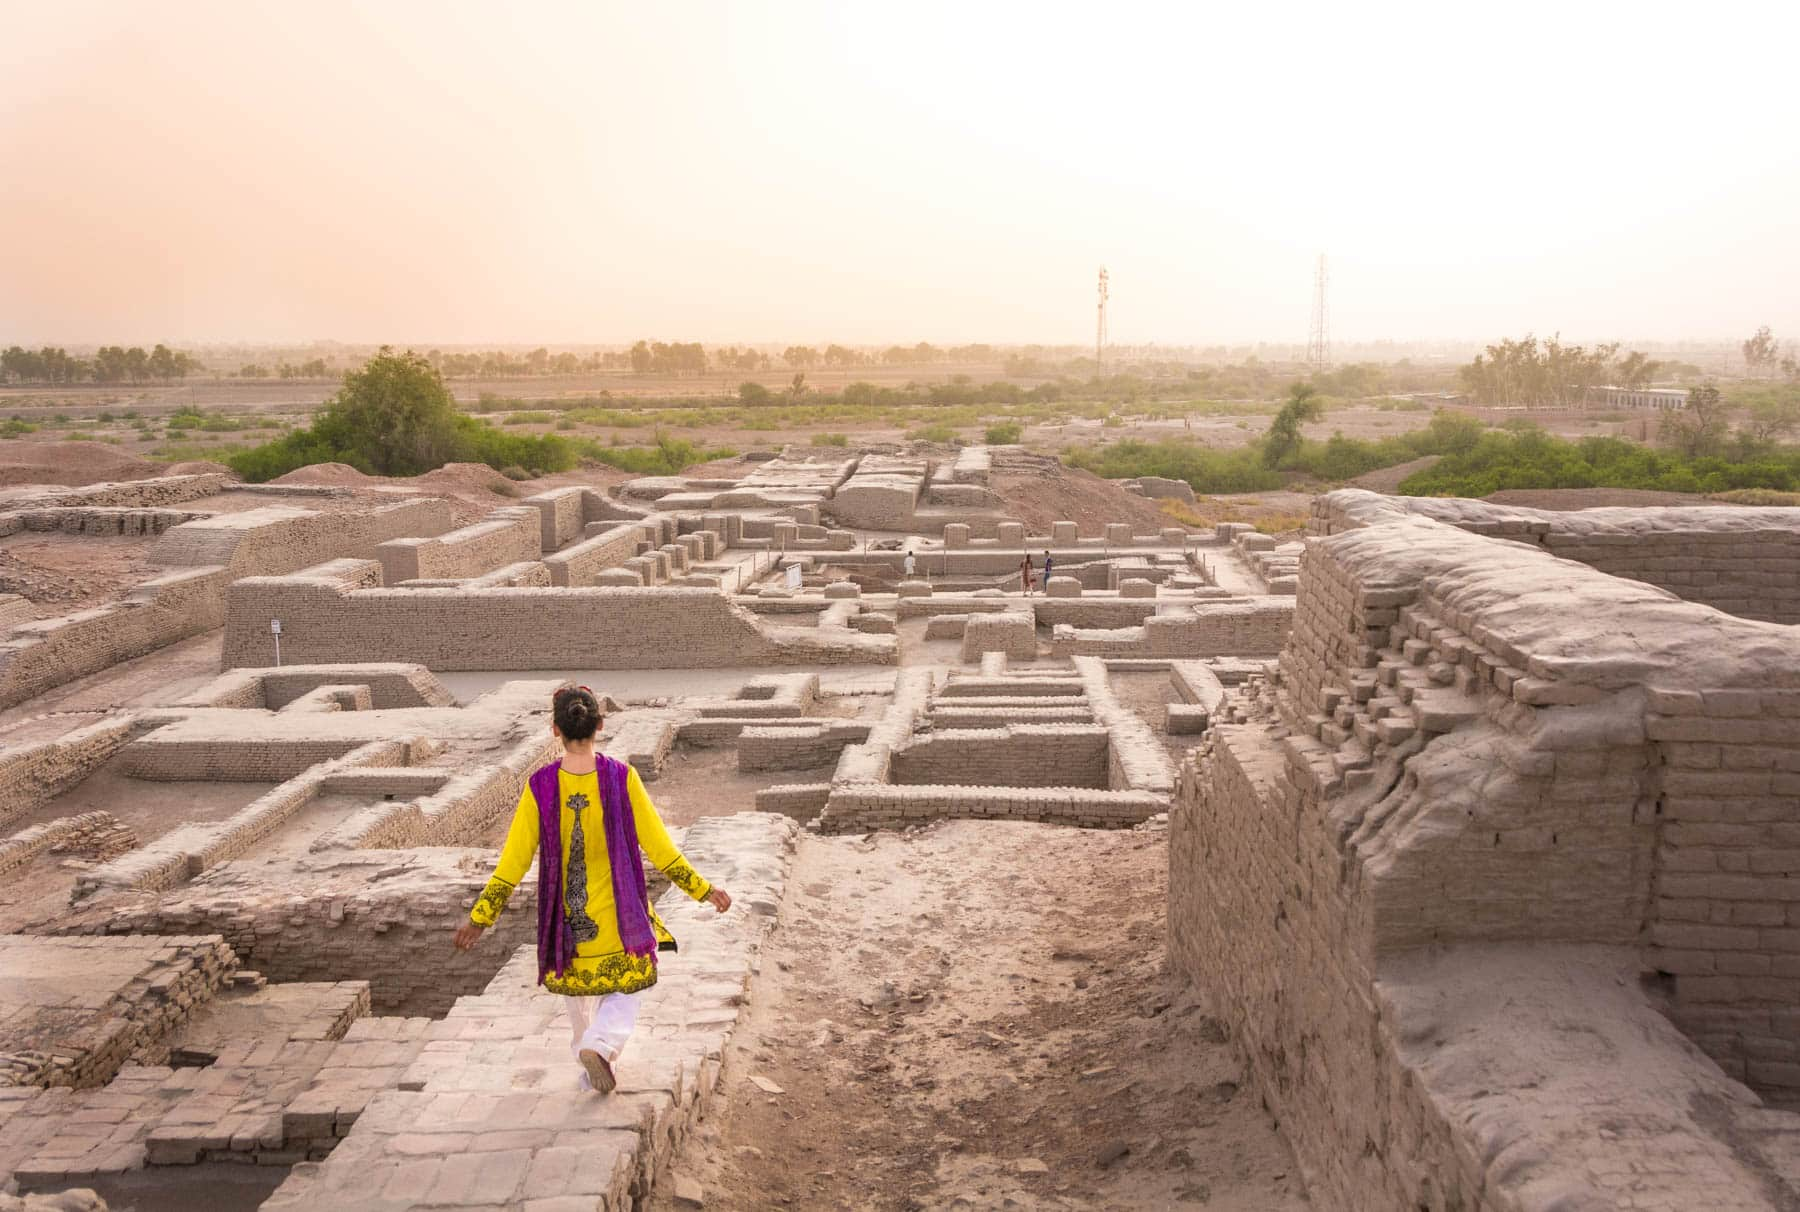 Pakistan bucket list - Alex in Moenjodaro, Sindh - Lost With Purpose travel blog